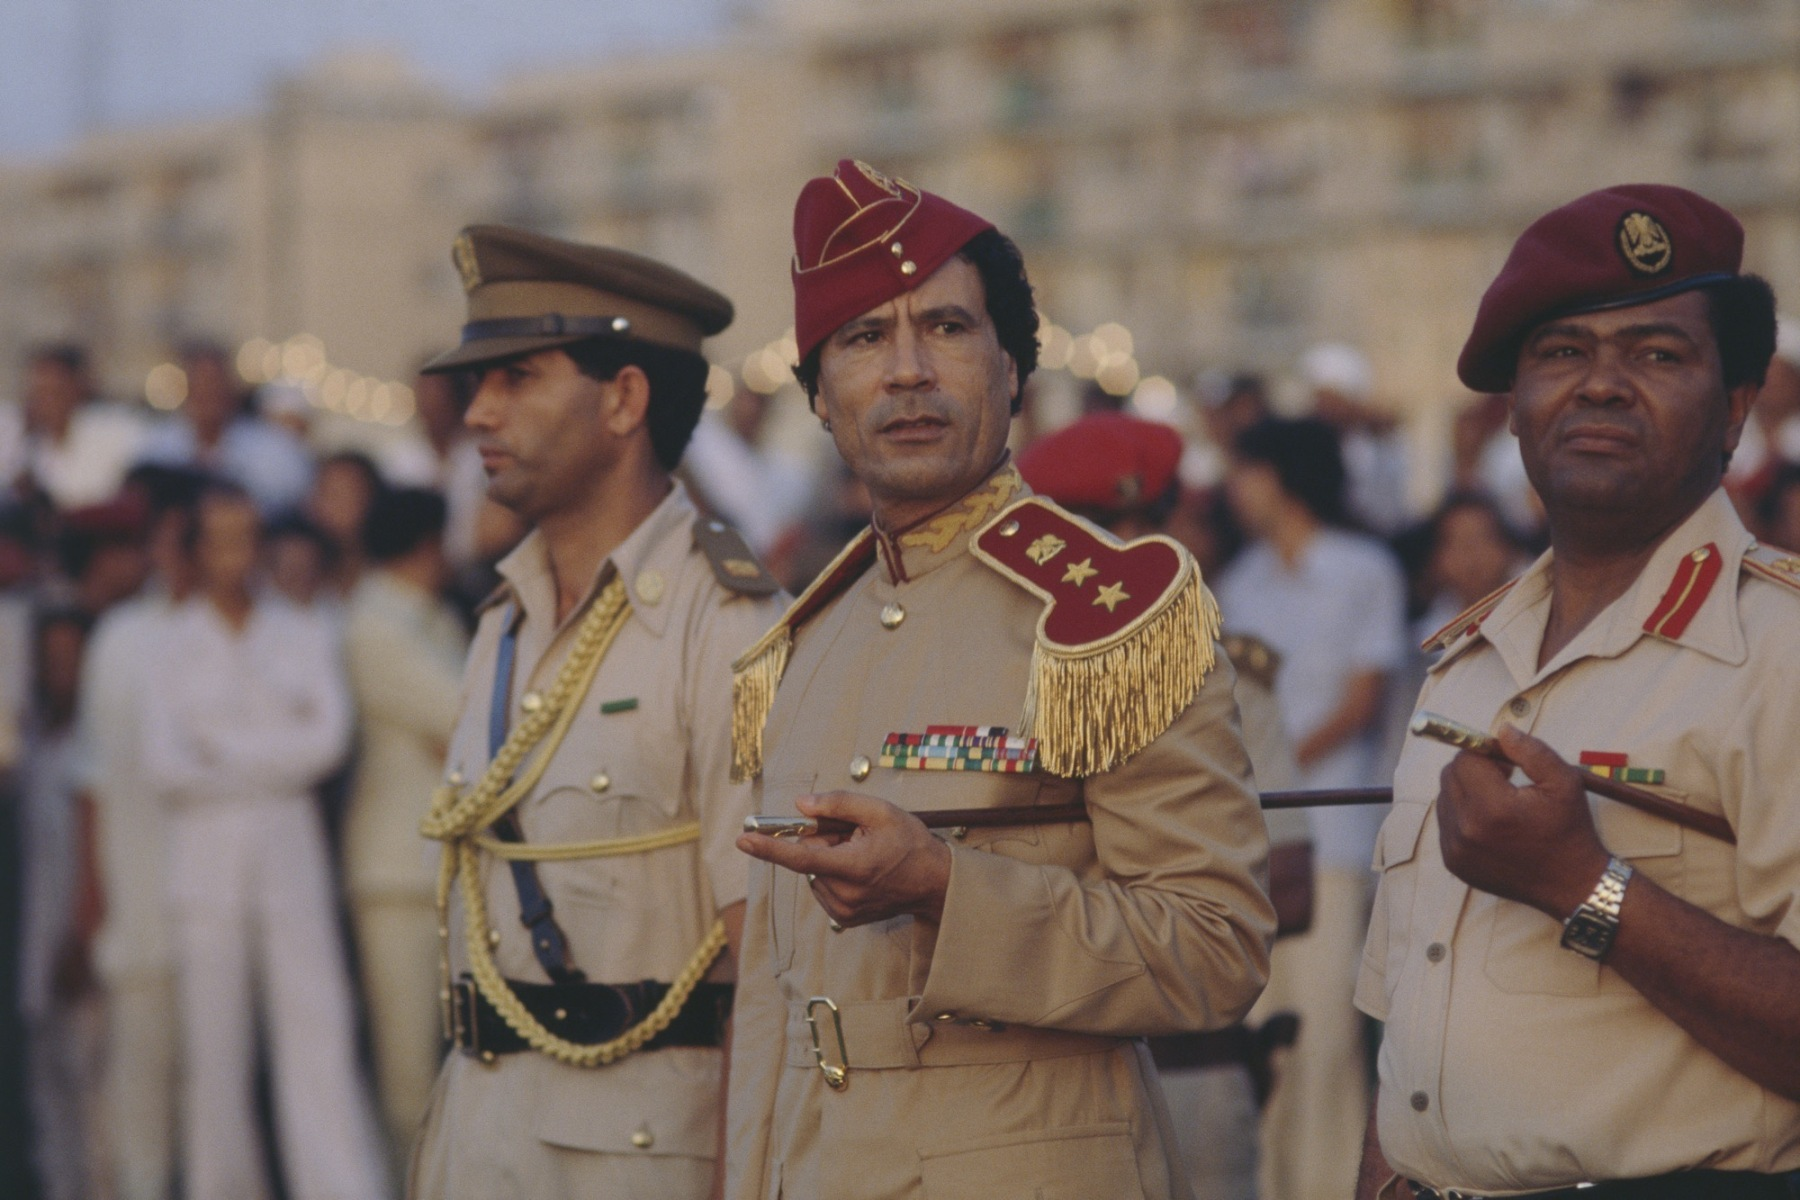 Libyan chief of state Muammar al-Qaddafi attends a 1981 graduation at the women's military academy in Tripoli. The academy opened in 1979 during Qaddafi's push to include women in Libya's armed forces. (Photo by Christine Spengler/Sygma/Sygma via Getty Images)